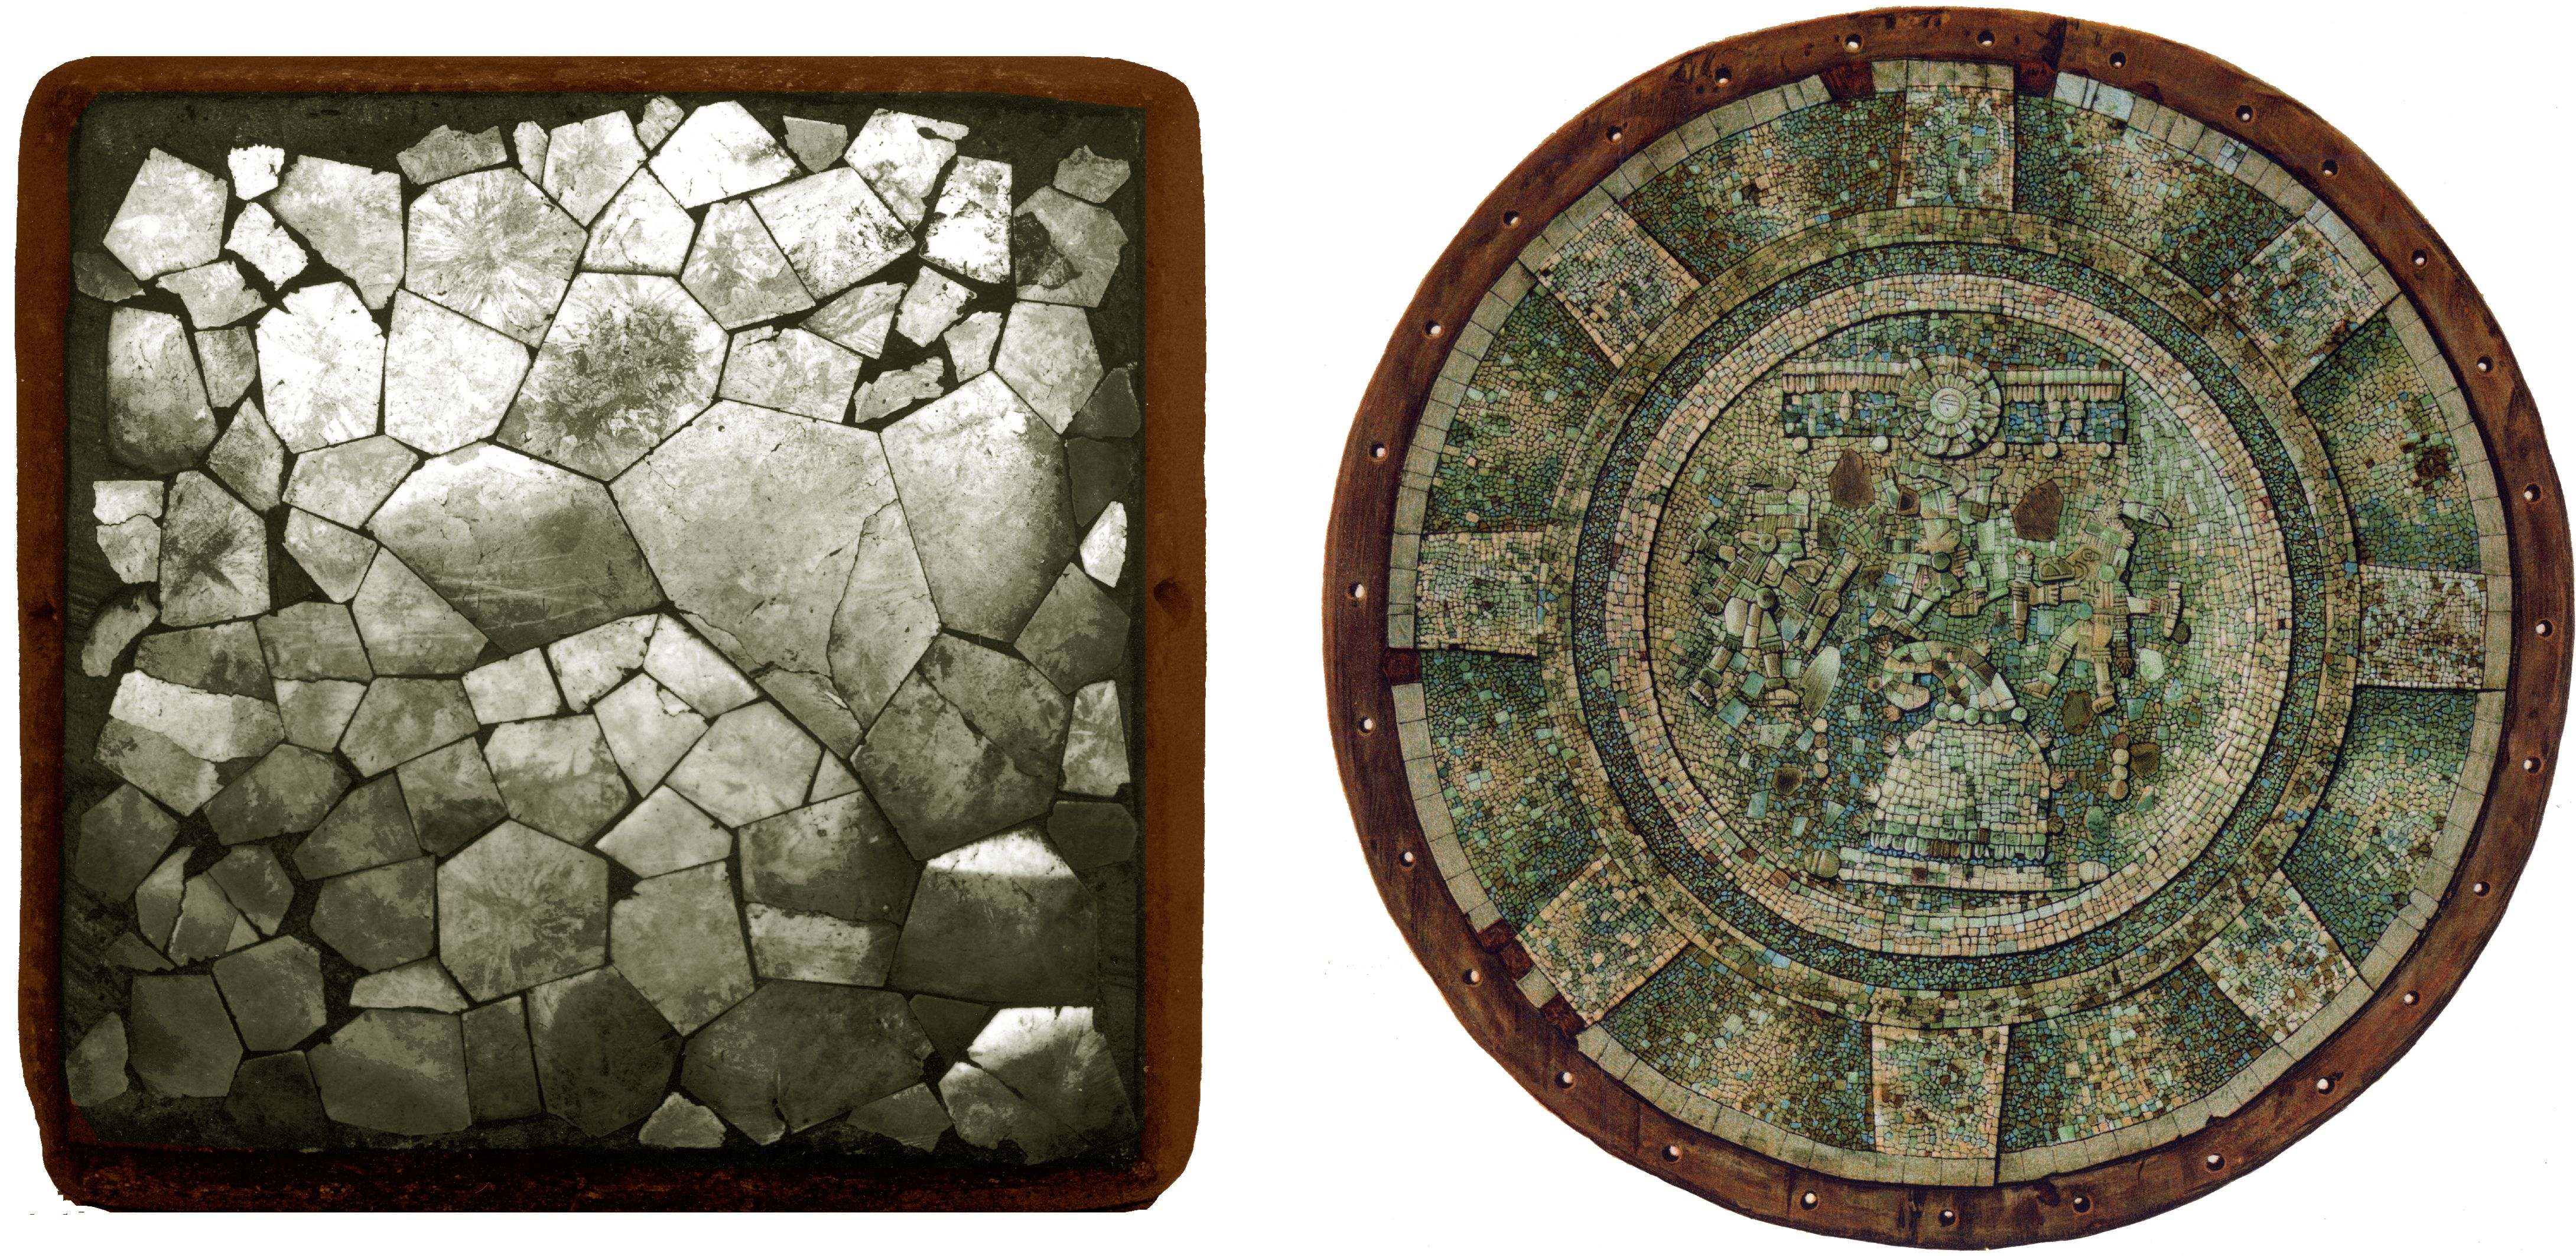 FIGURE 31. Mosaic mirrors from Mesoamerica (not to scale). On the left, a Classic-period mirror from the site of Kixpék, Guatemala (courtesy of The University Museum, University of Pennsylvania; accession # NA11610). On the right, a Postclassic turquoise mosaic mirror-shield from Central Mexico (from Saville 1922, frontispiece).